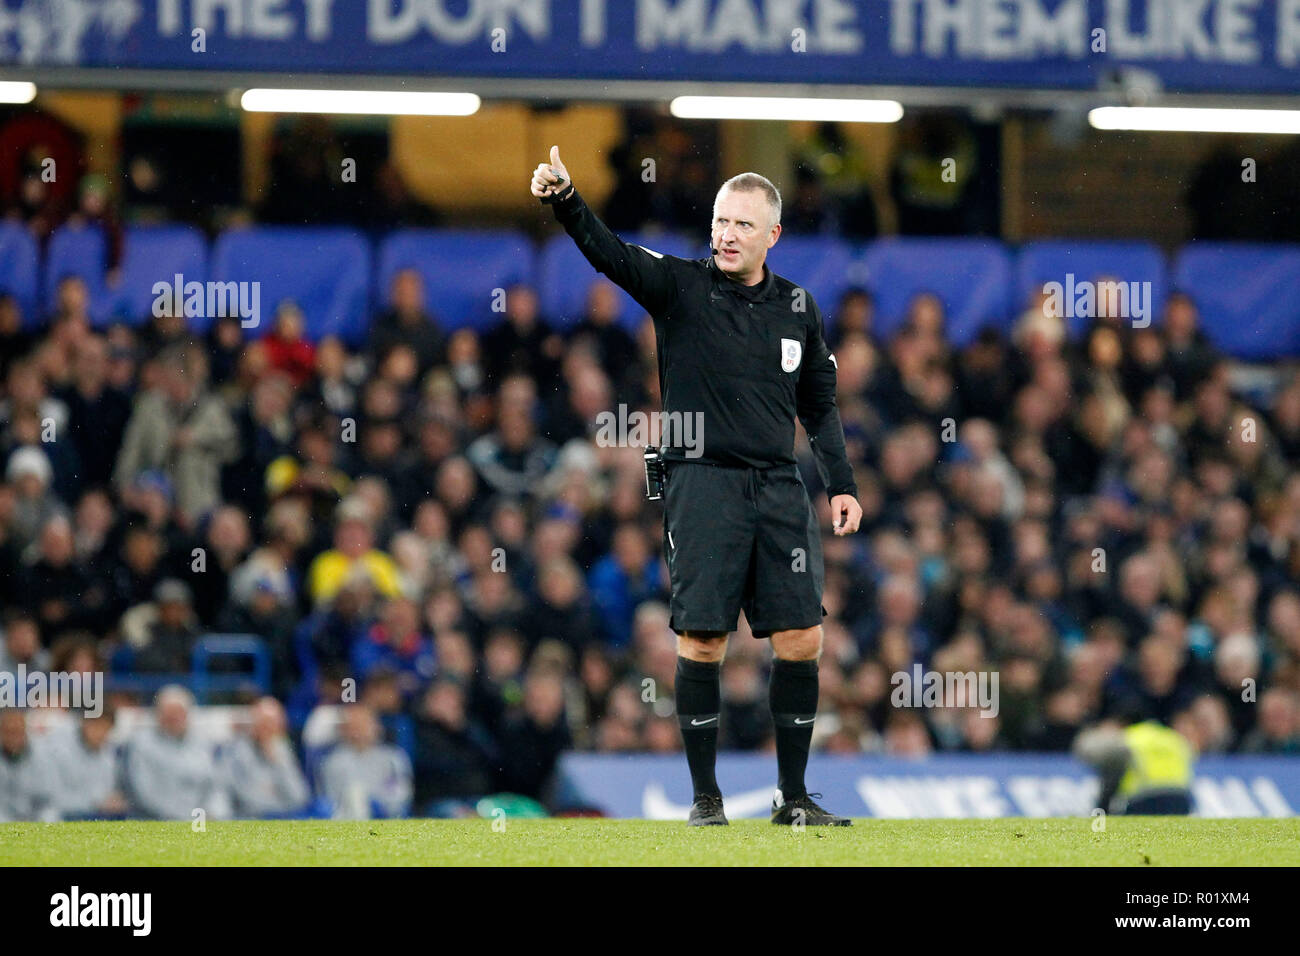 Referee, Jonathan Moss gives the thumbs up during the EFL Carabao Cup Round of 16 match between Chelsea and Derby County at Stamford Bridge, London, England on 31 October 2018. Photo by Carlton Myrie.  Editorial use only, license required for commercial use. No use in betting, games or a single club/league/player publications. - Stock Image